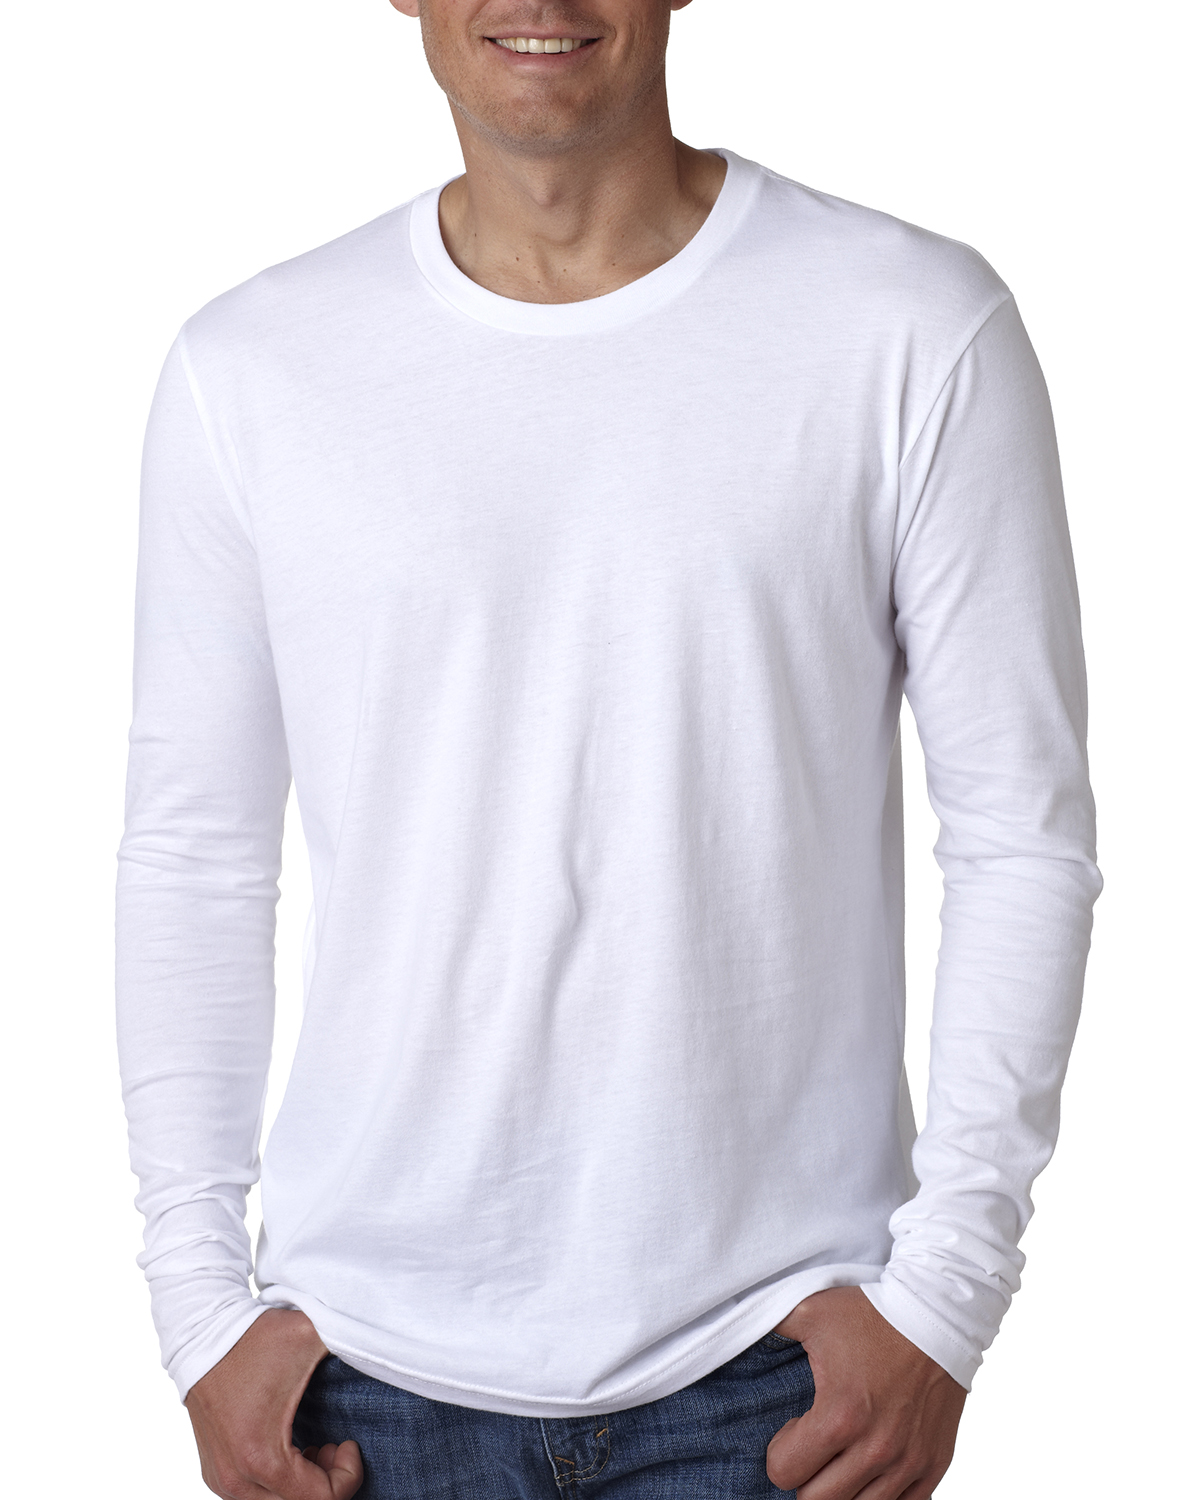 Next Level N3601 Men Premium Fitted Long-Sleeve Crew Tee White at GotApparel